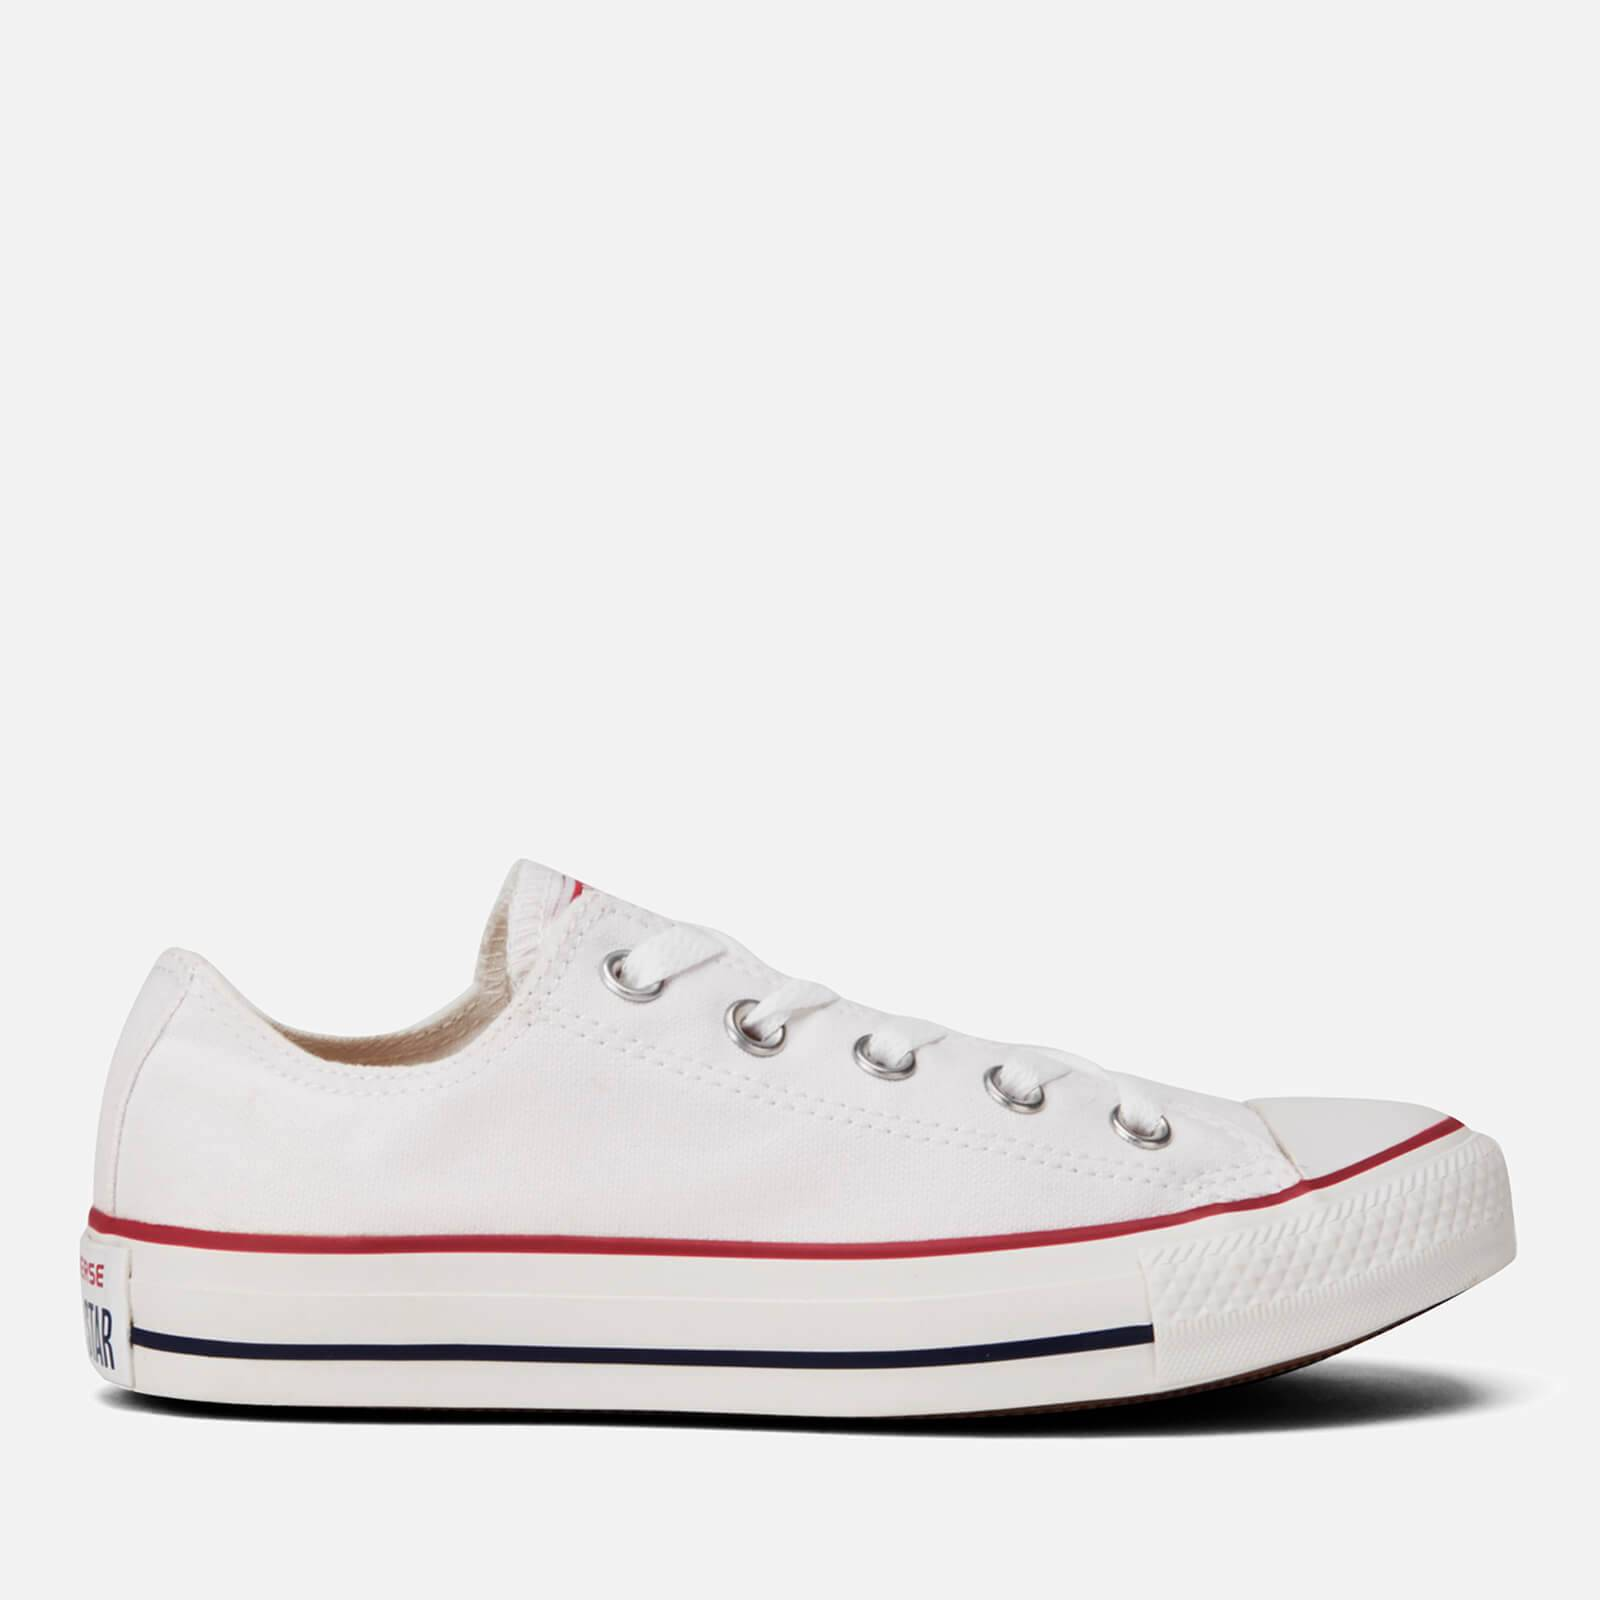 Converse Chuck Taylor All Star Ox Trainers - Optical White - UK 6